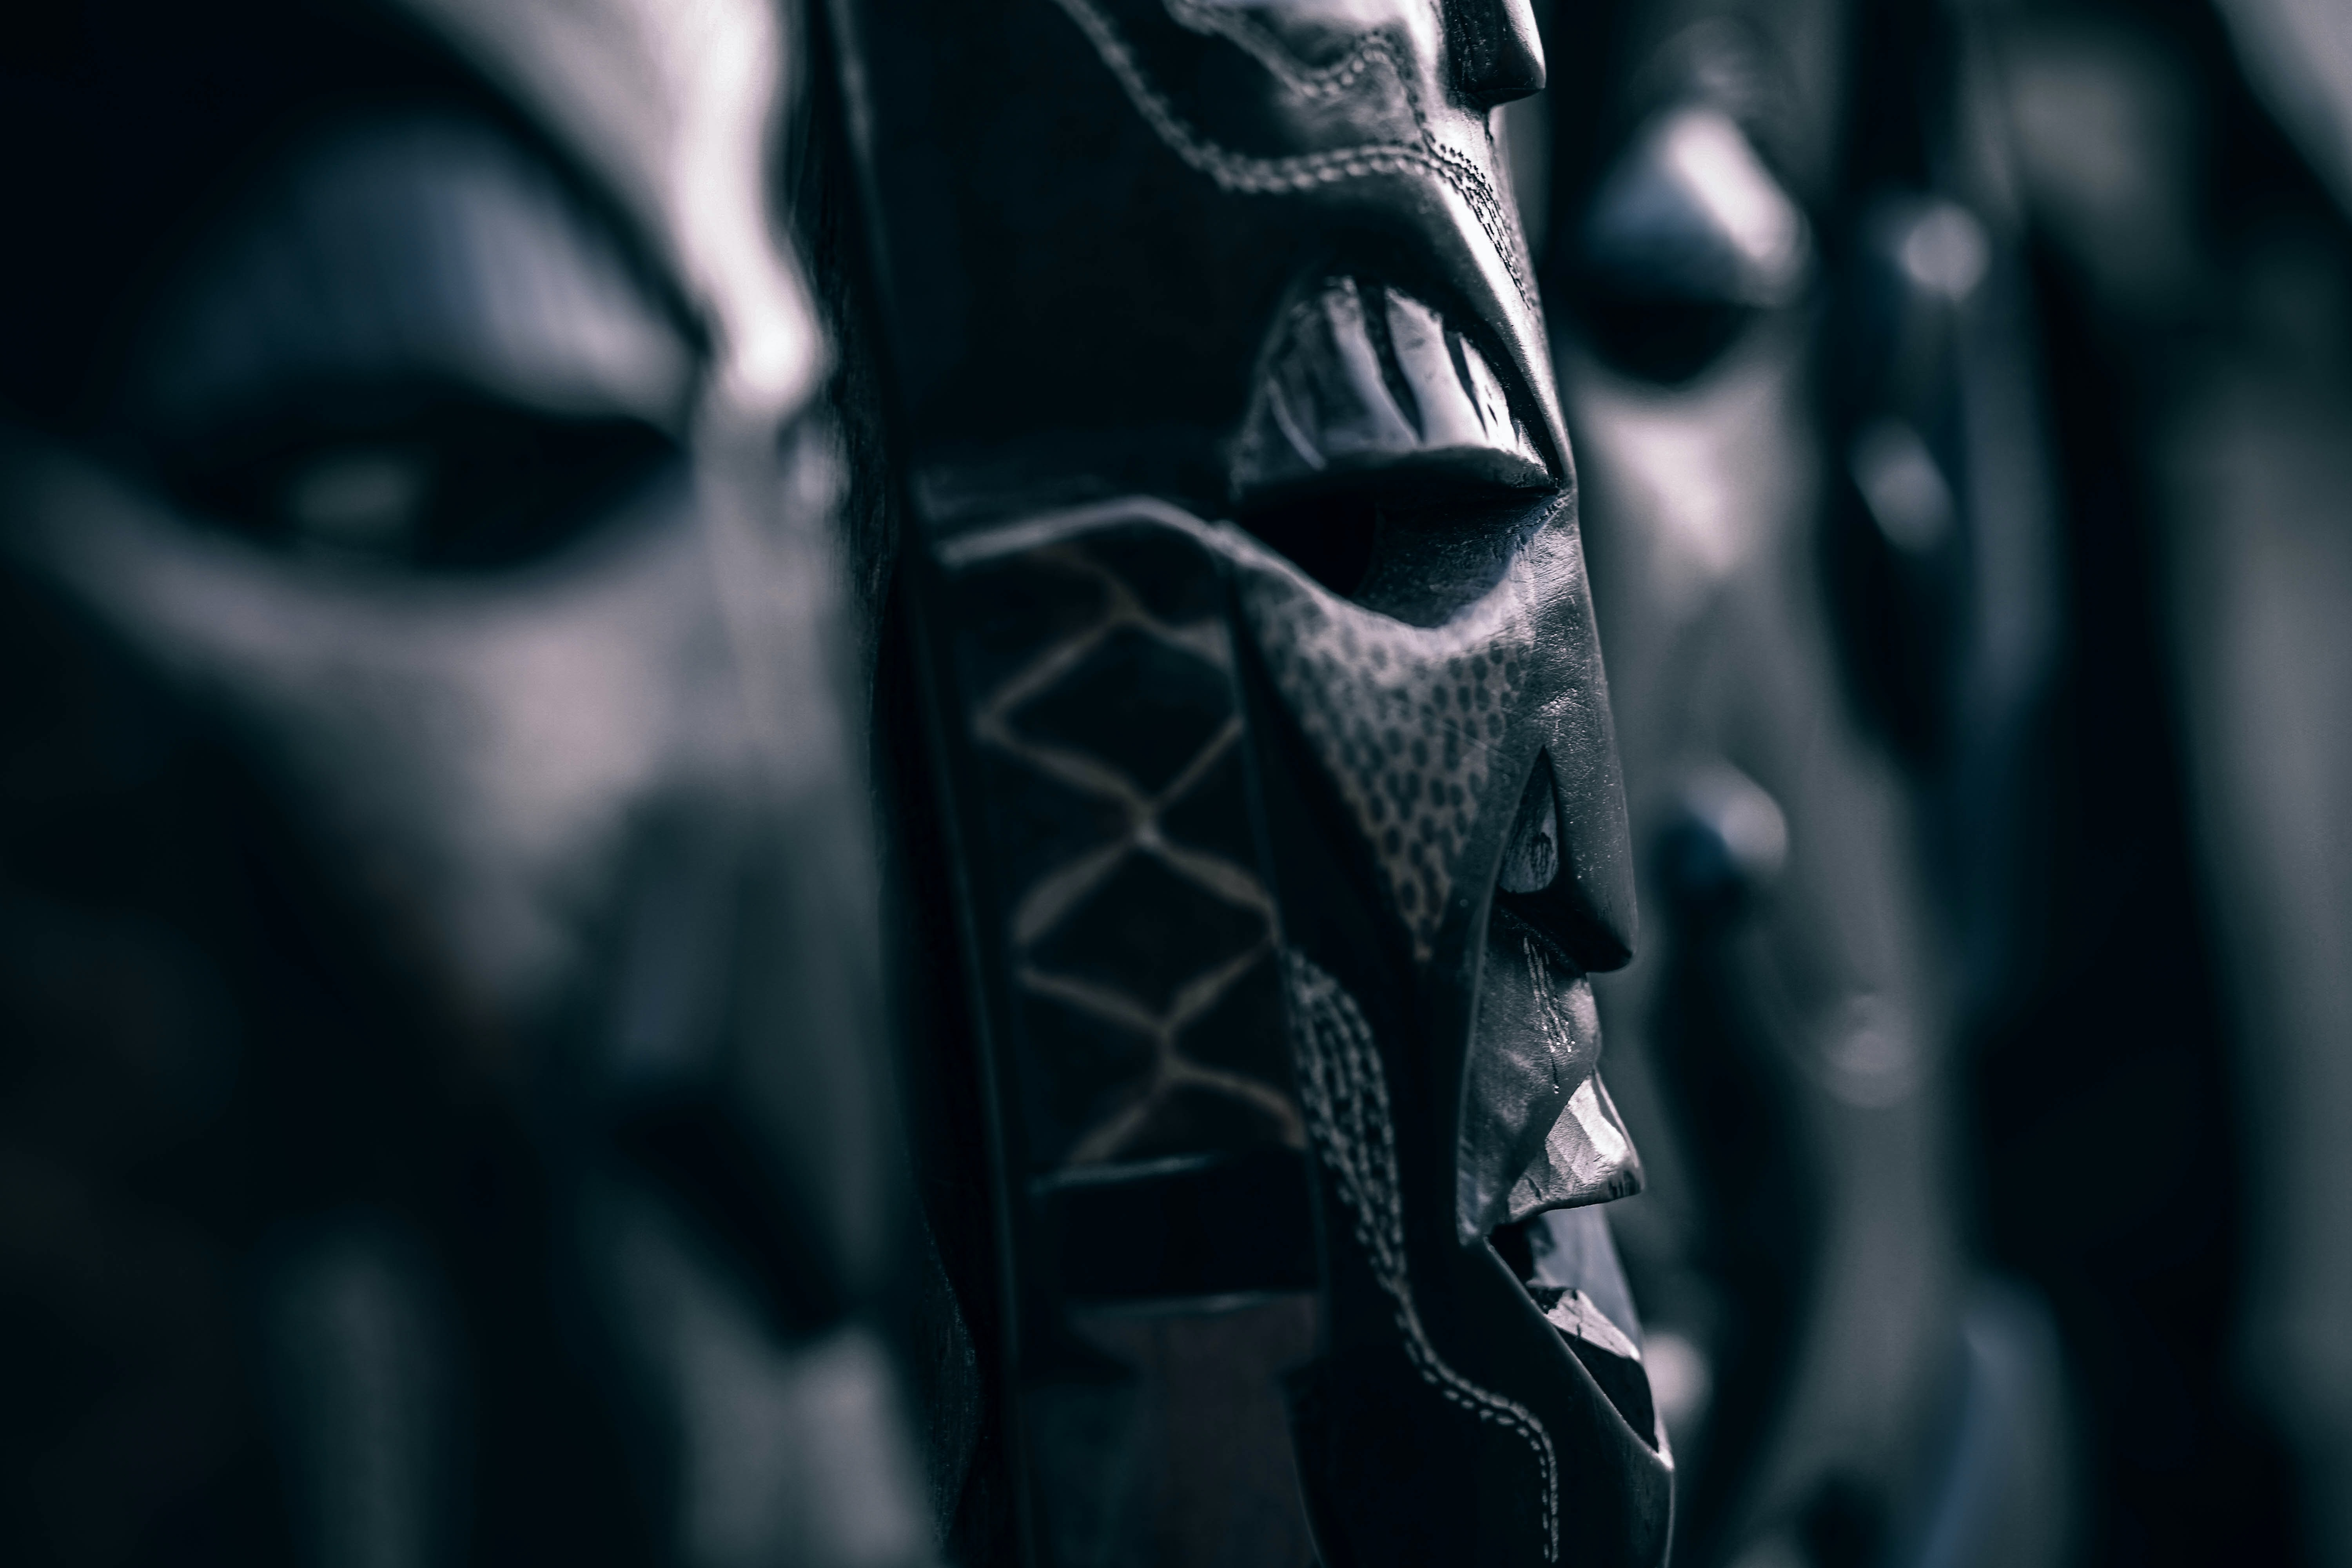 selective focus photograph of black tribal mask decor